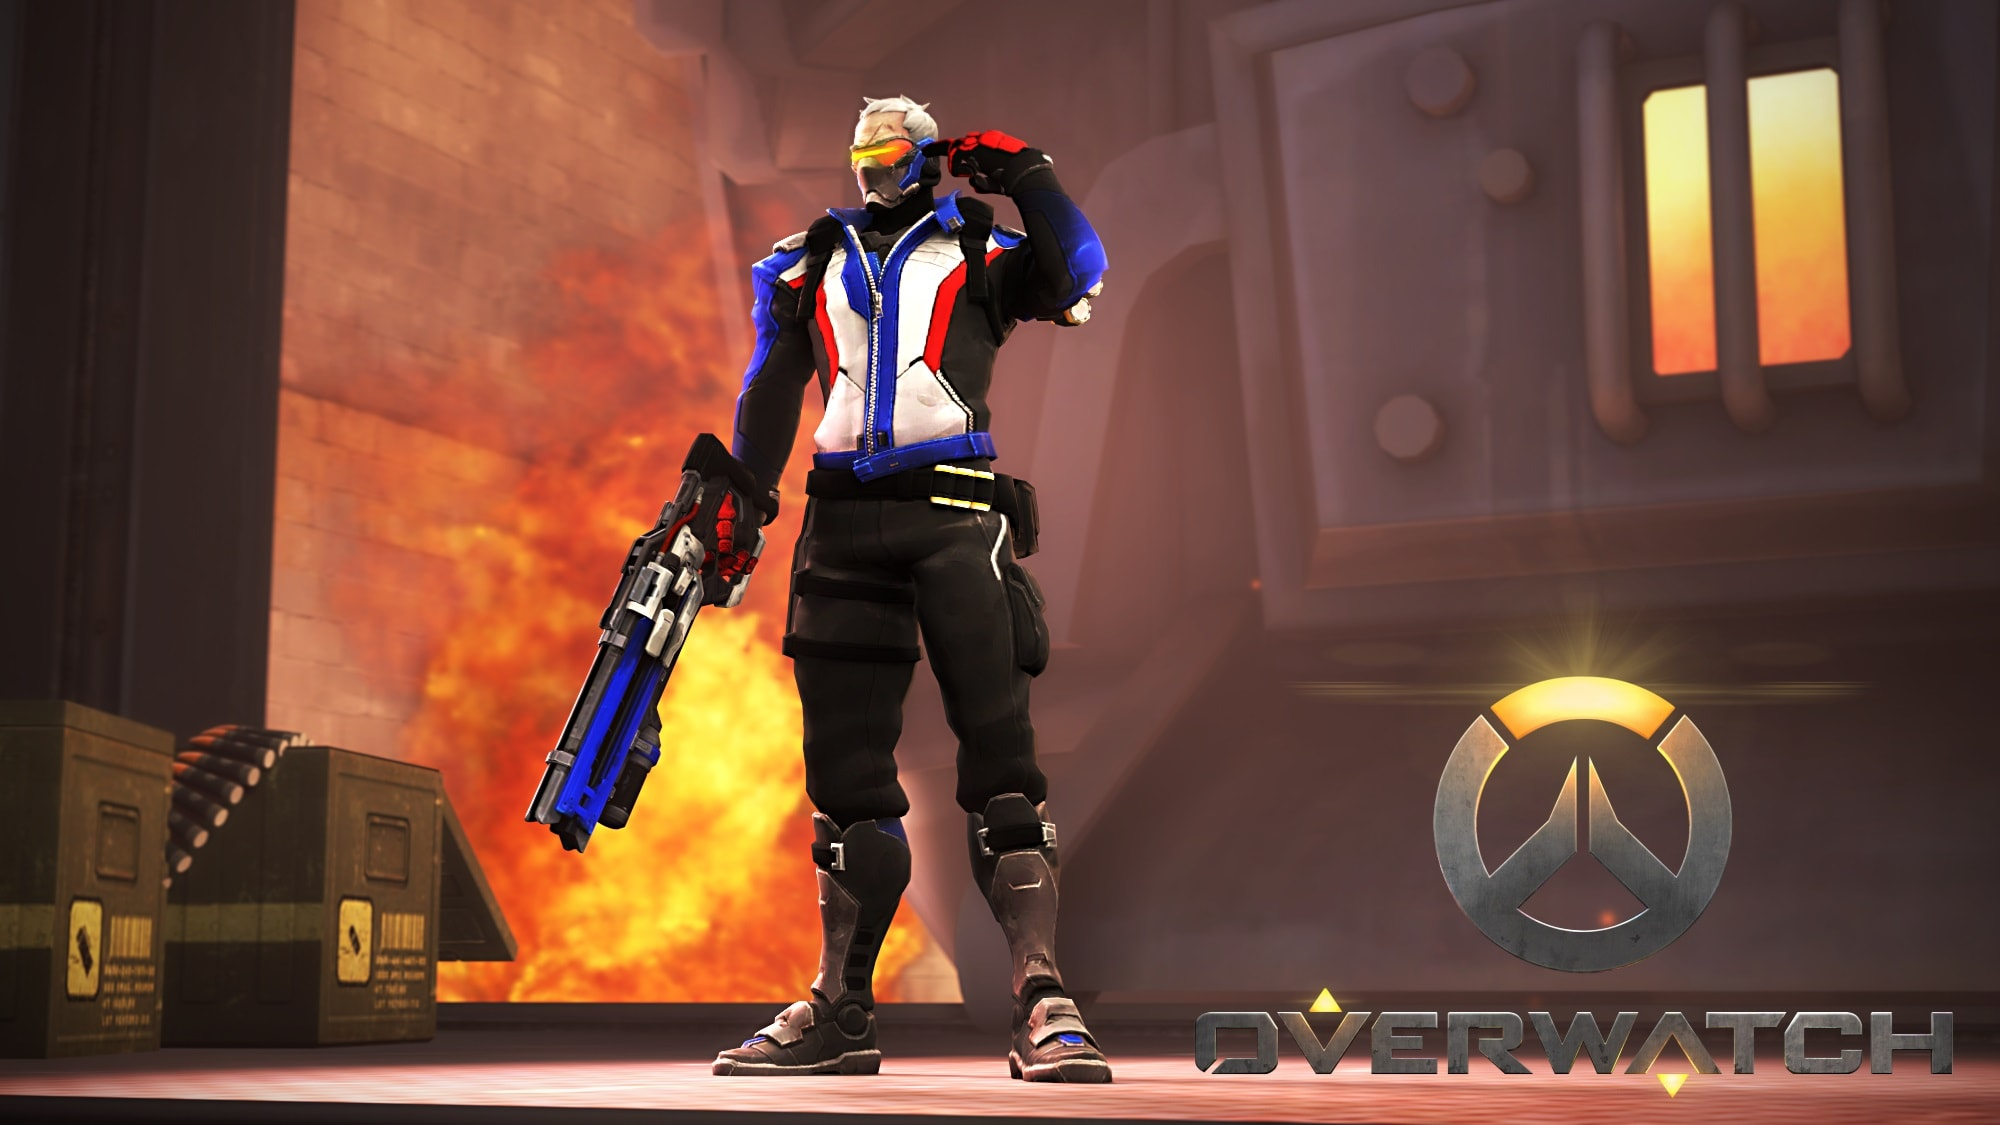 Overwatch : Soldier: 76 Backgrounds